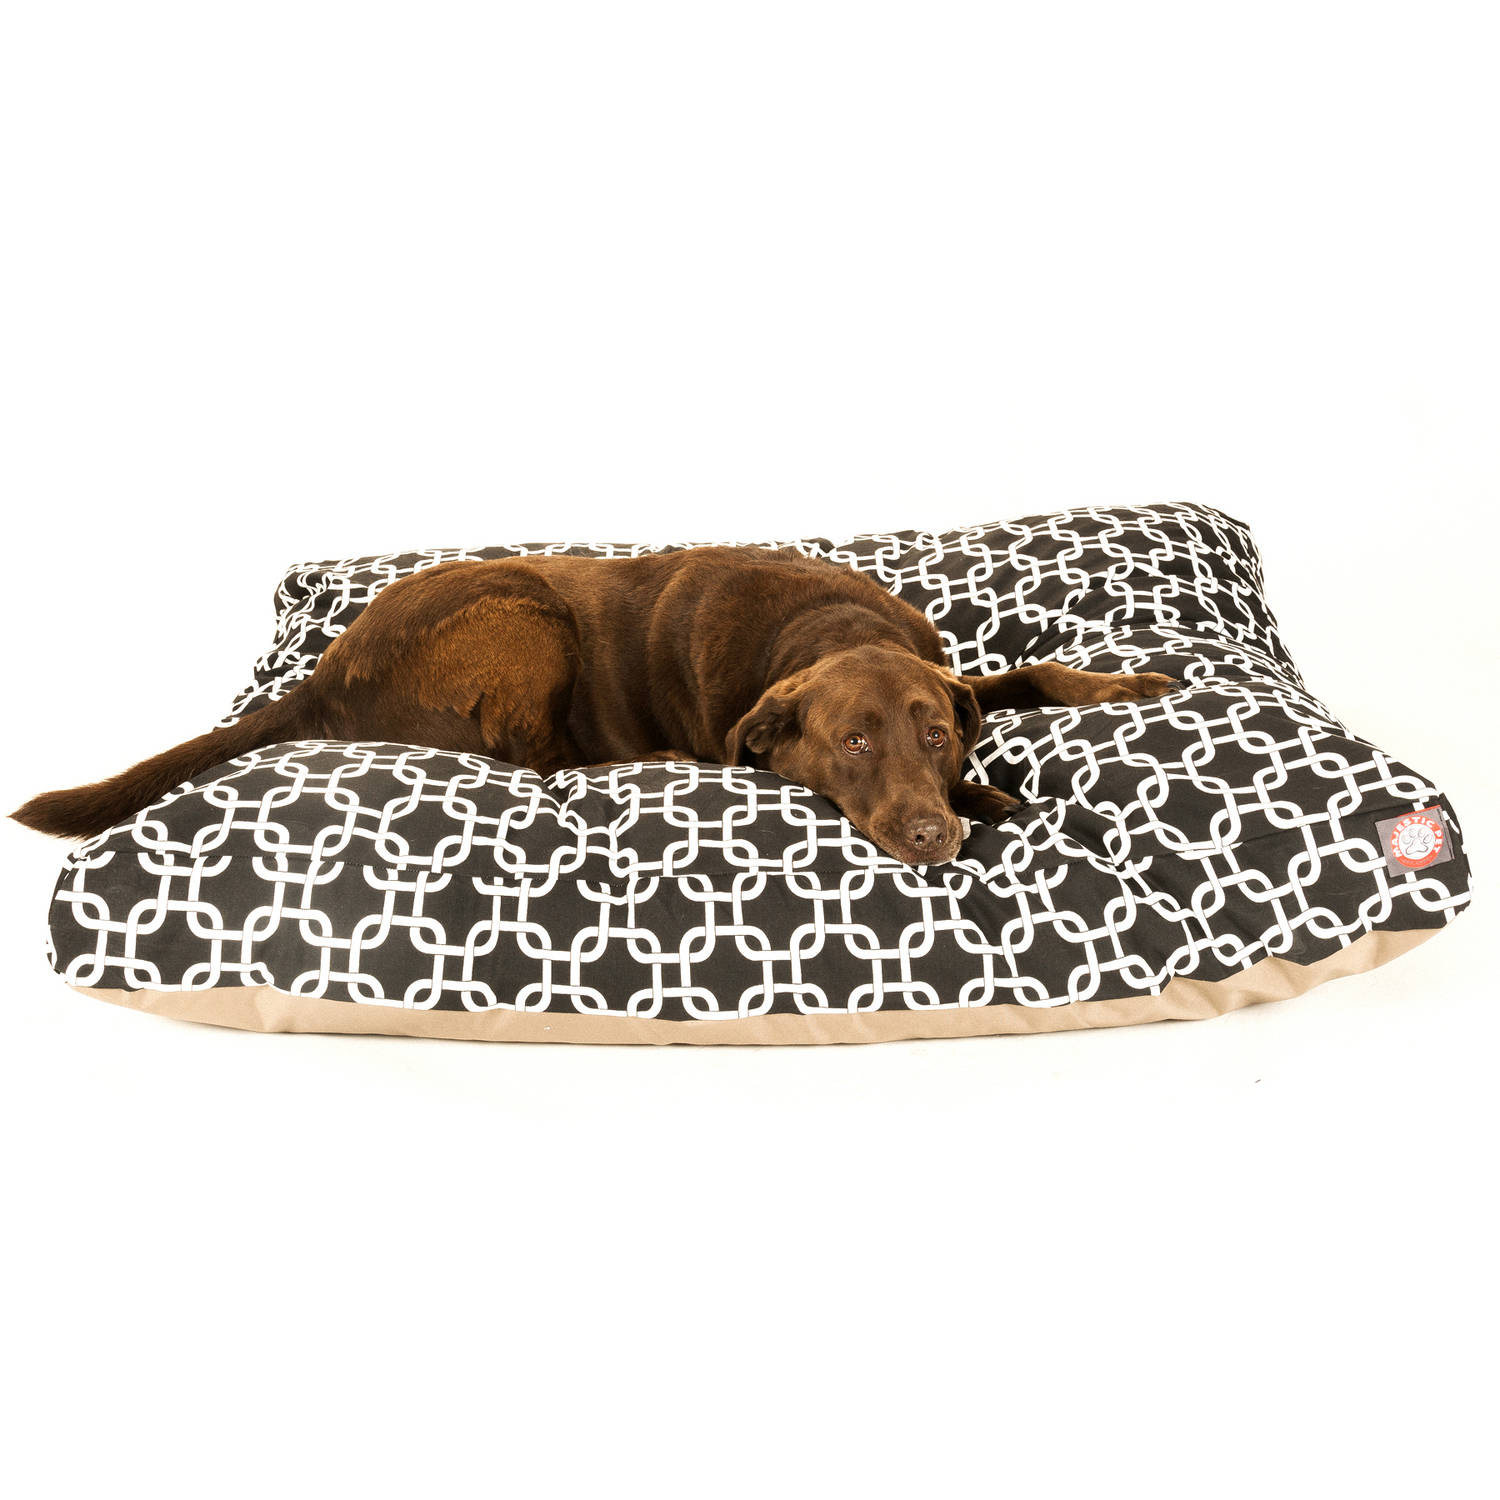 Majestic Pet Products Links Rectangle Pet Bed, Black